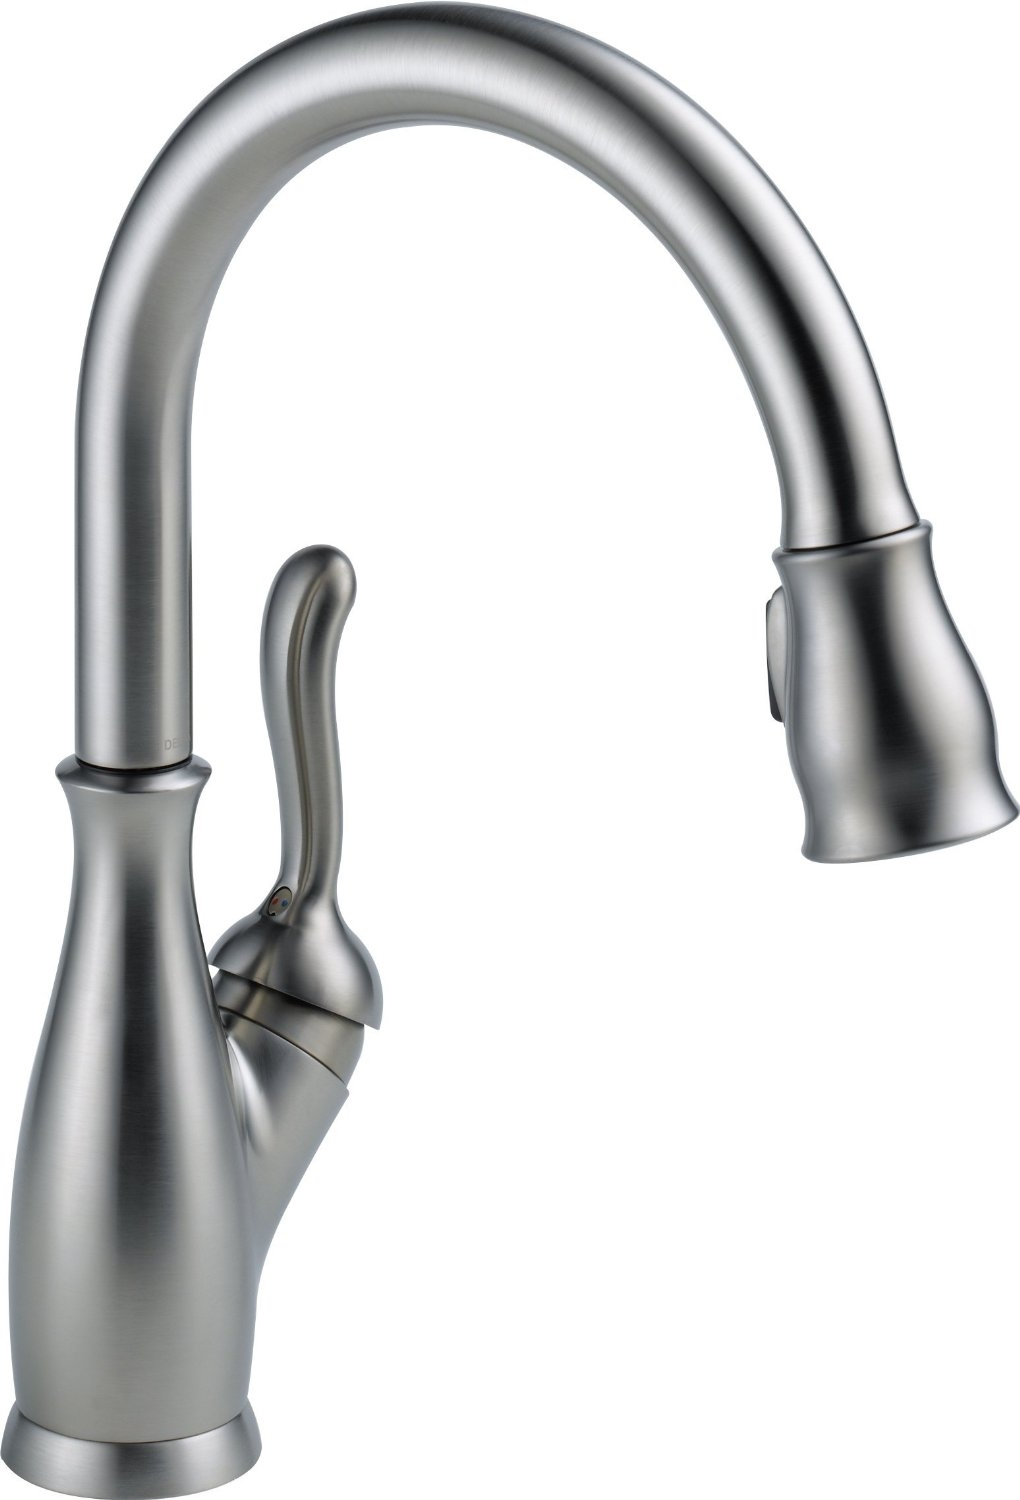 delta no touch faucet delta no touch faucet delta kitchen faucets the complete guide top reviews 1020 x 1500